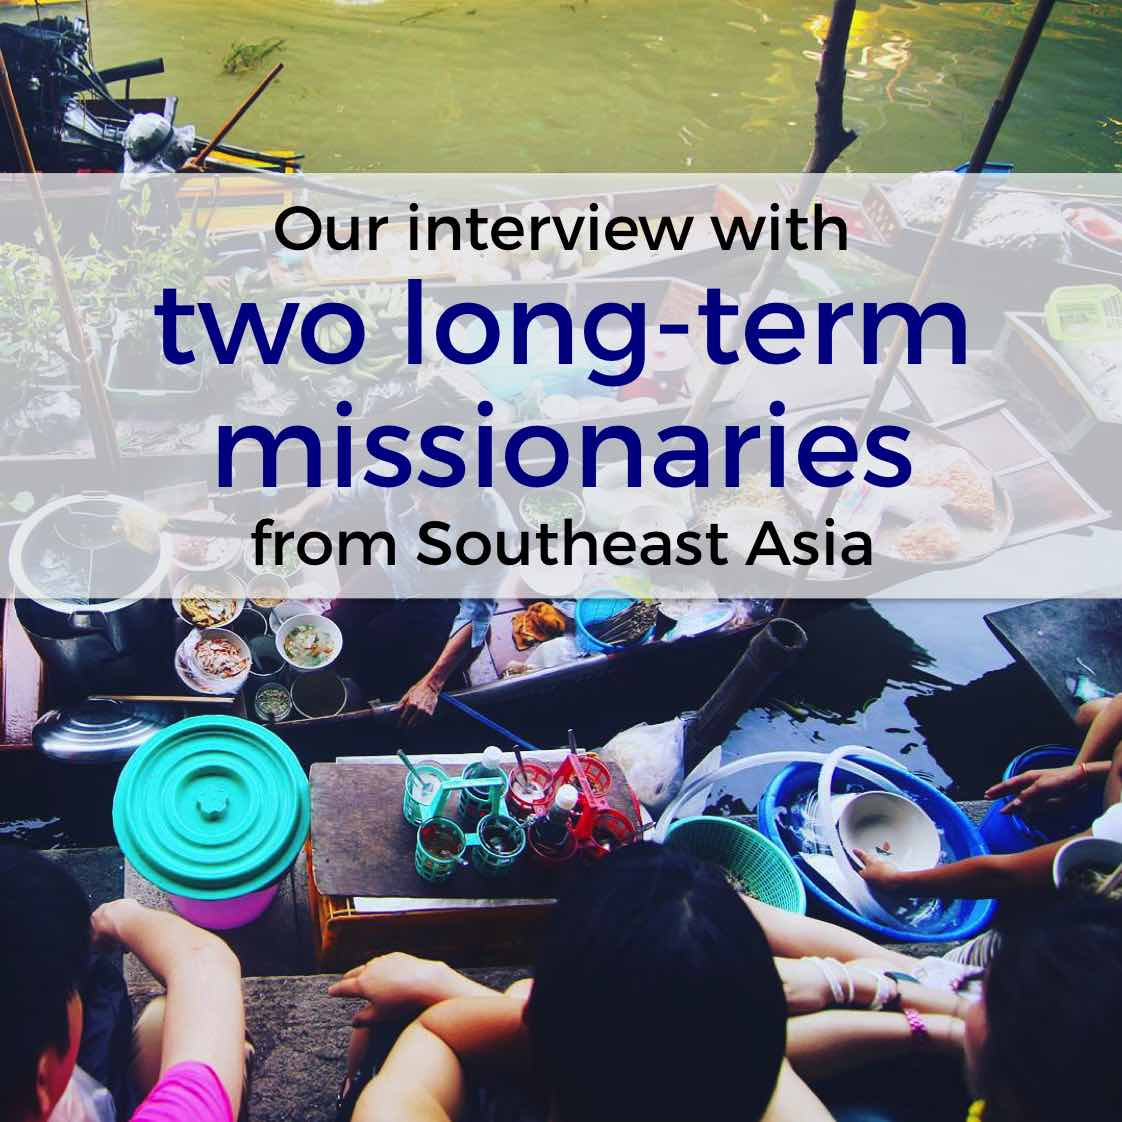 Episode 37: Our interview with two long-term missionaries from Southeast Asia